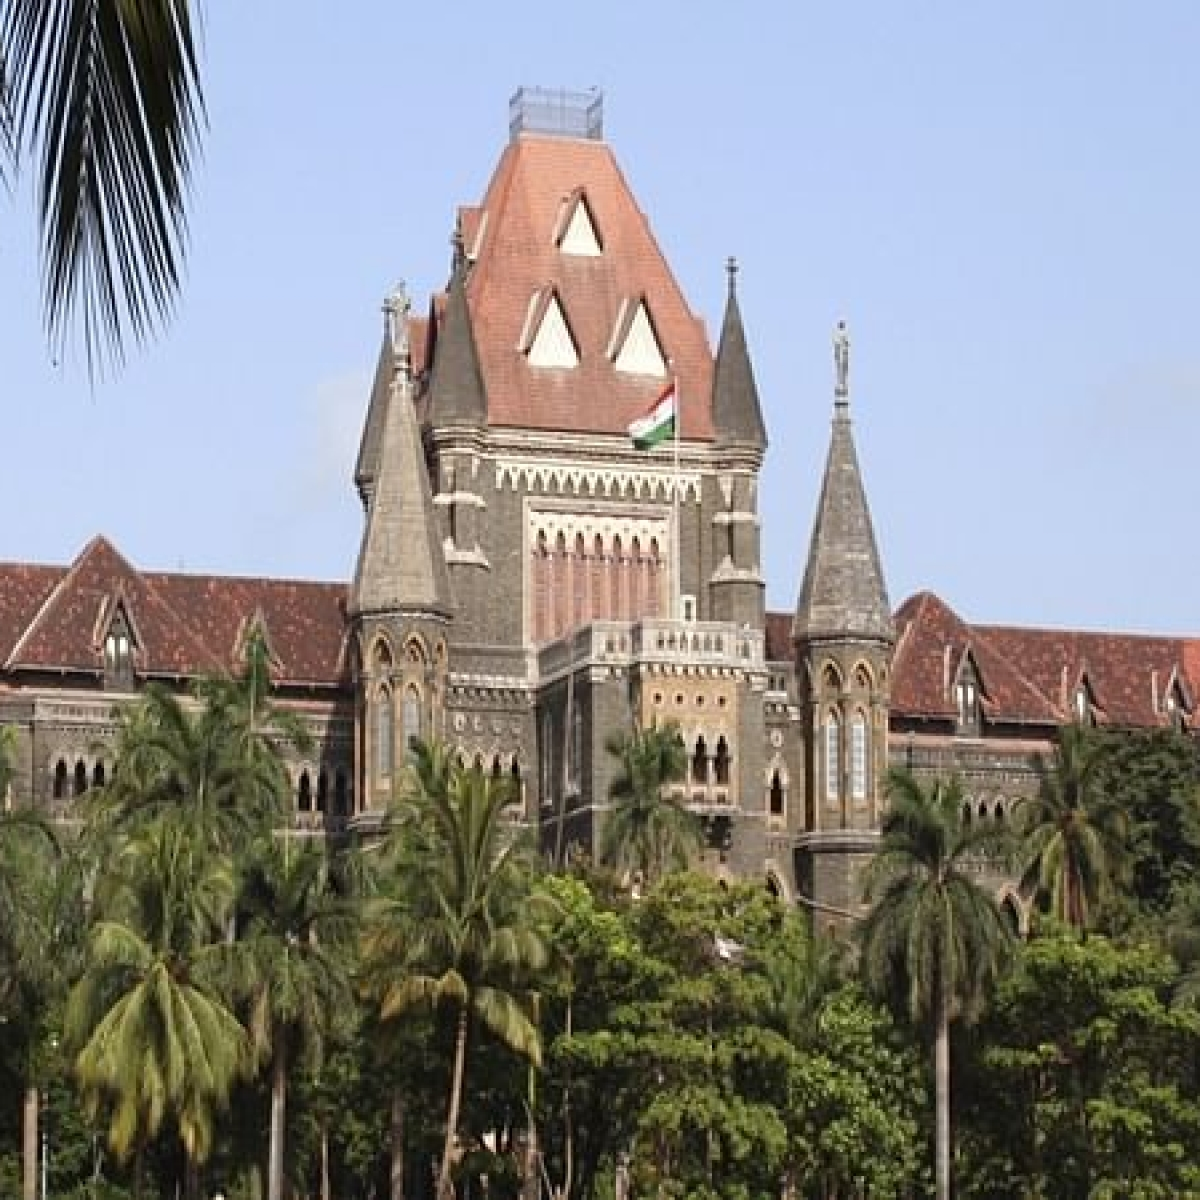 FPJ Legal: Citizens must be scared to step out of their homes during lockdown, Bombay HC tells authorities